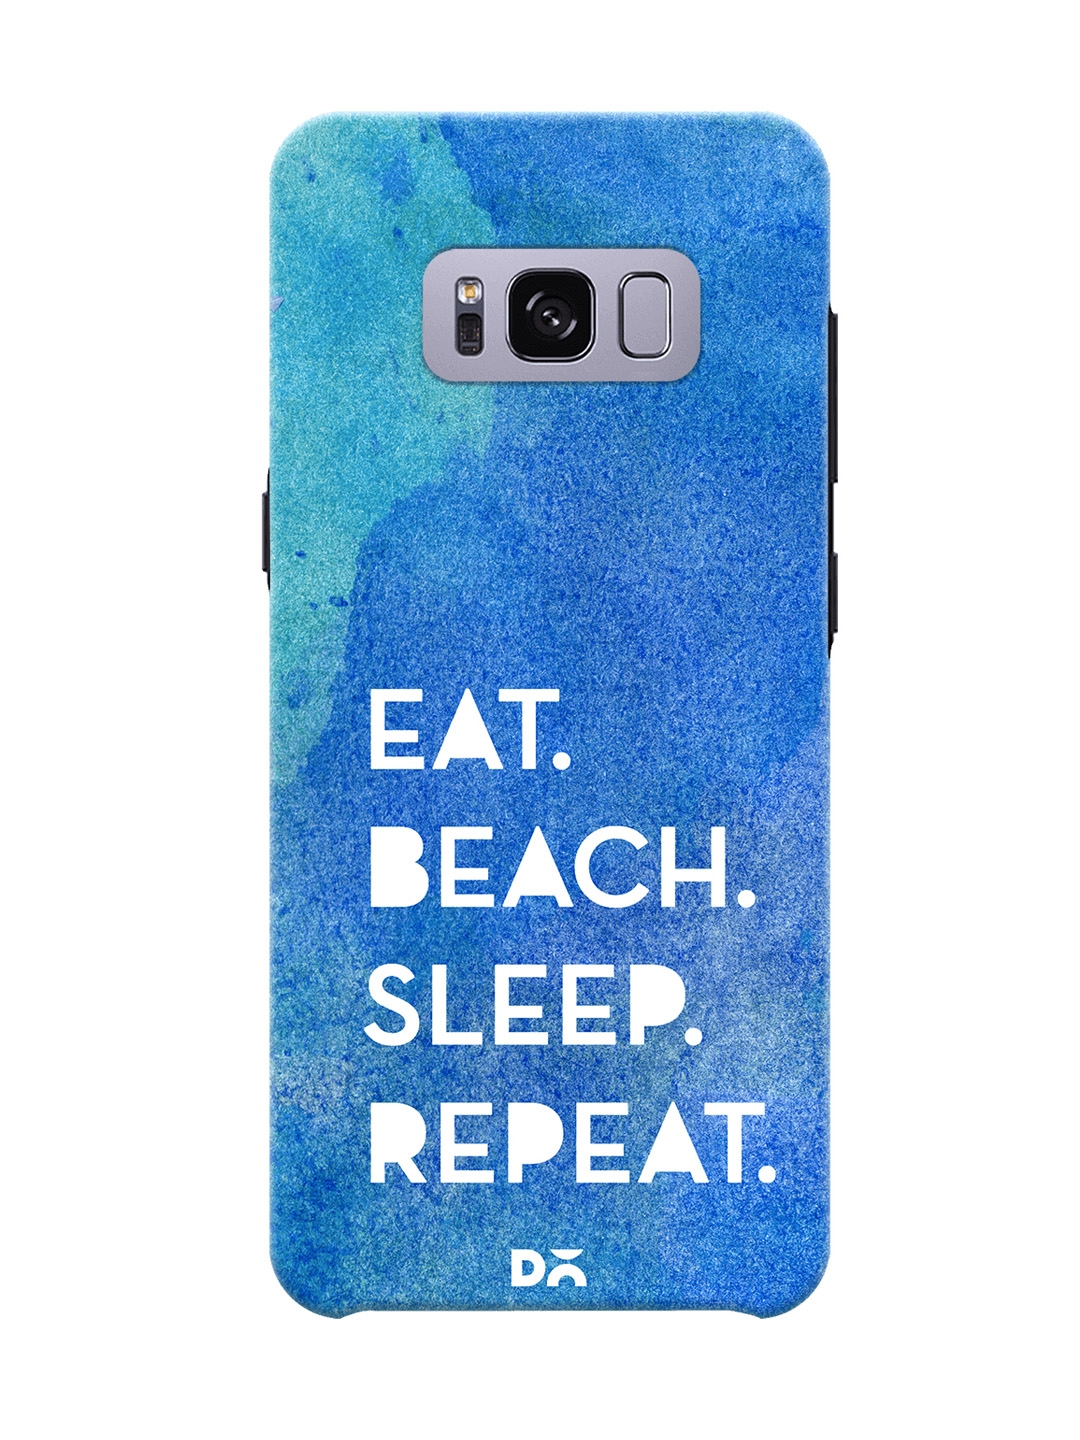 DailyObjects Unisex Blue Samsung Galaxy S8 Plus Mobile Cover DailyObjects Mobile Accessories